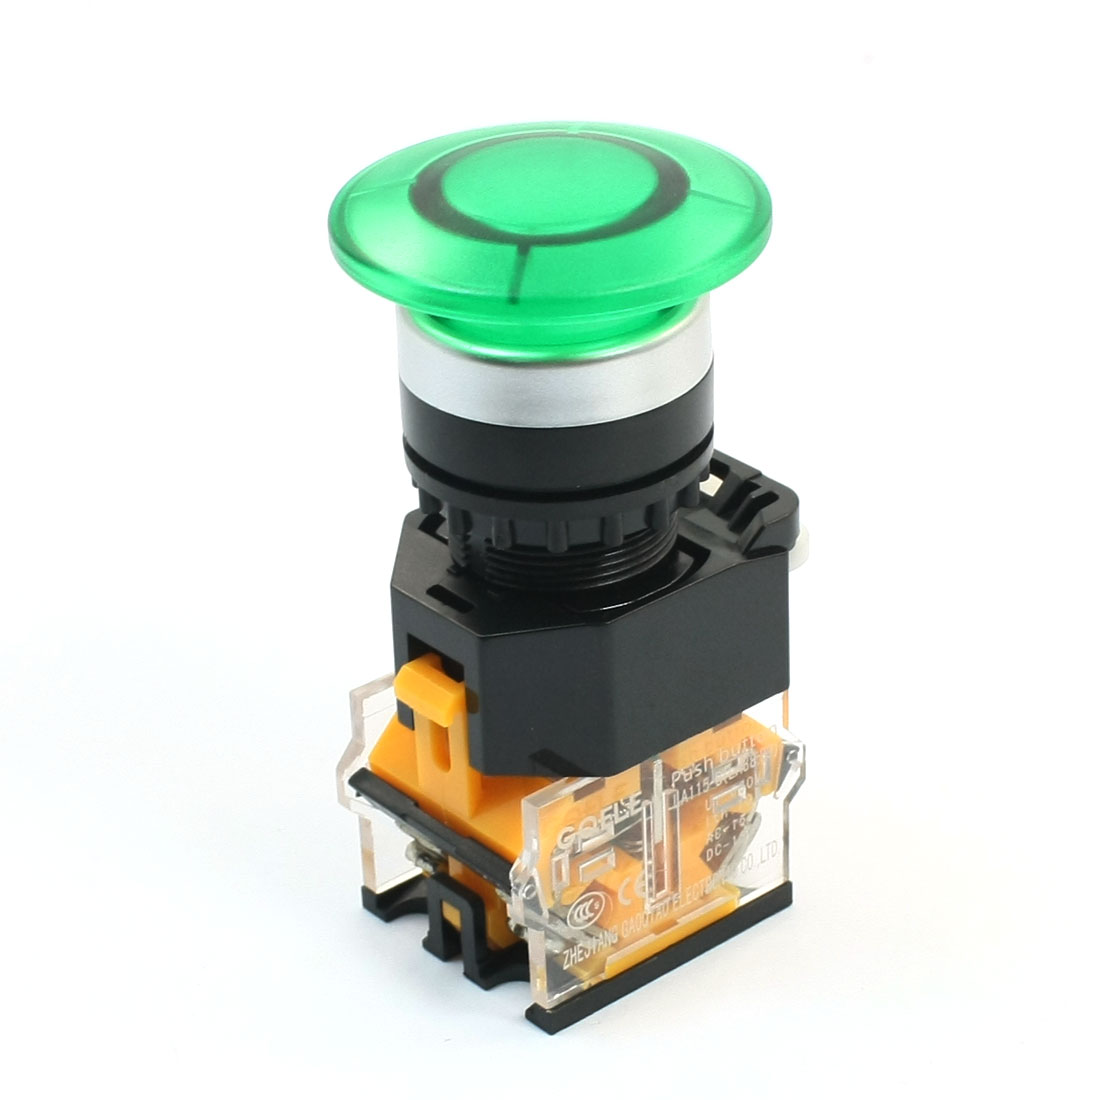 LA115B DPST Green Mushroom Head Momentary Push Button Switch 660V 10A